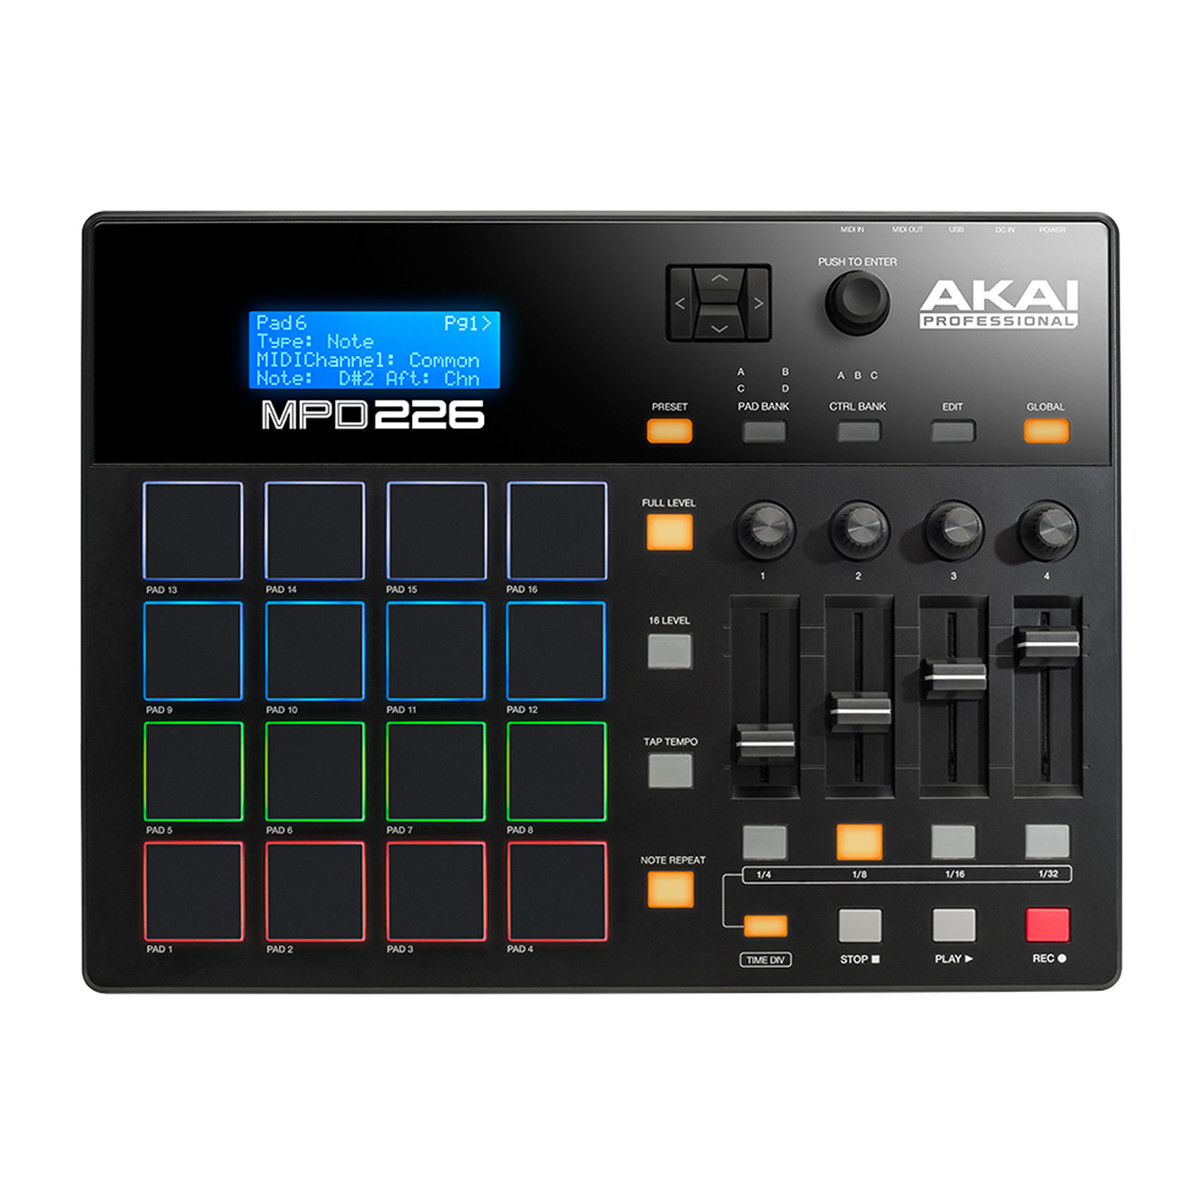 Akai Professional MPD226 Pad Controller with Faders